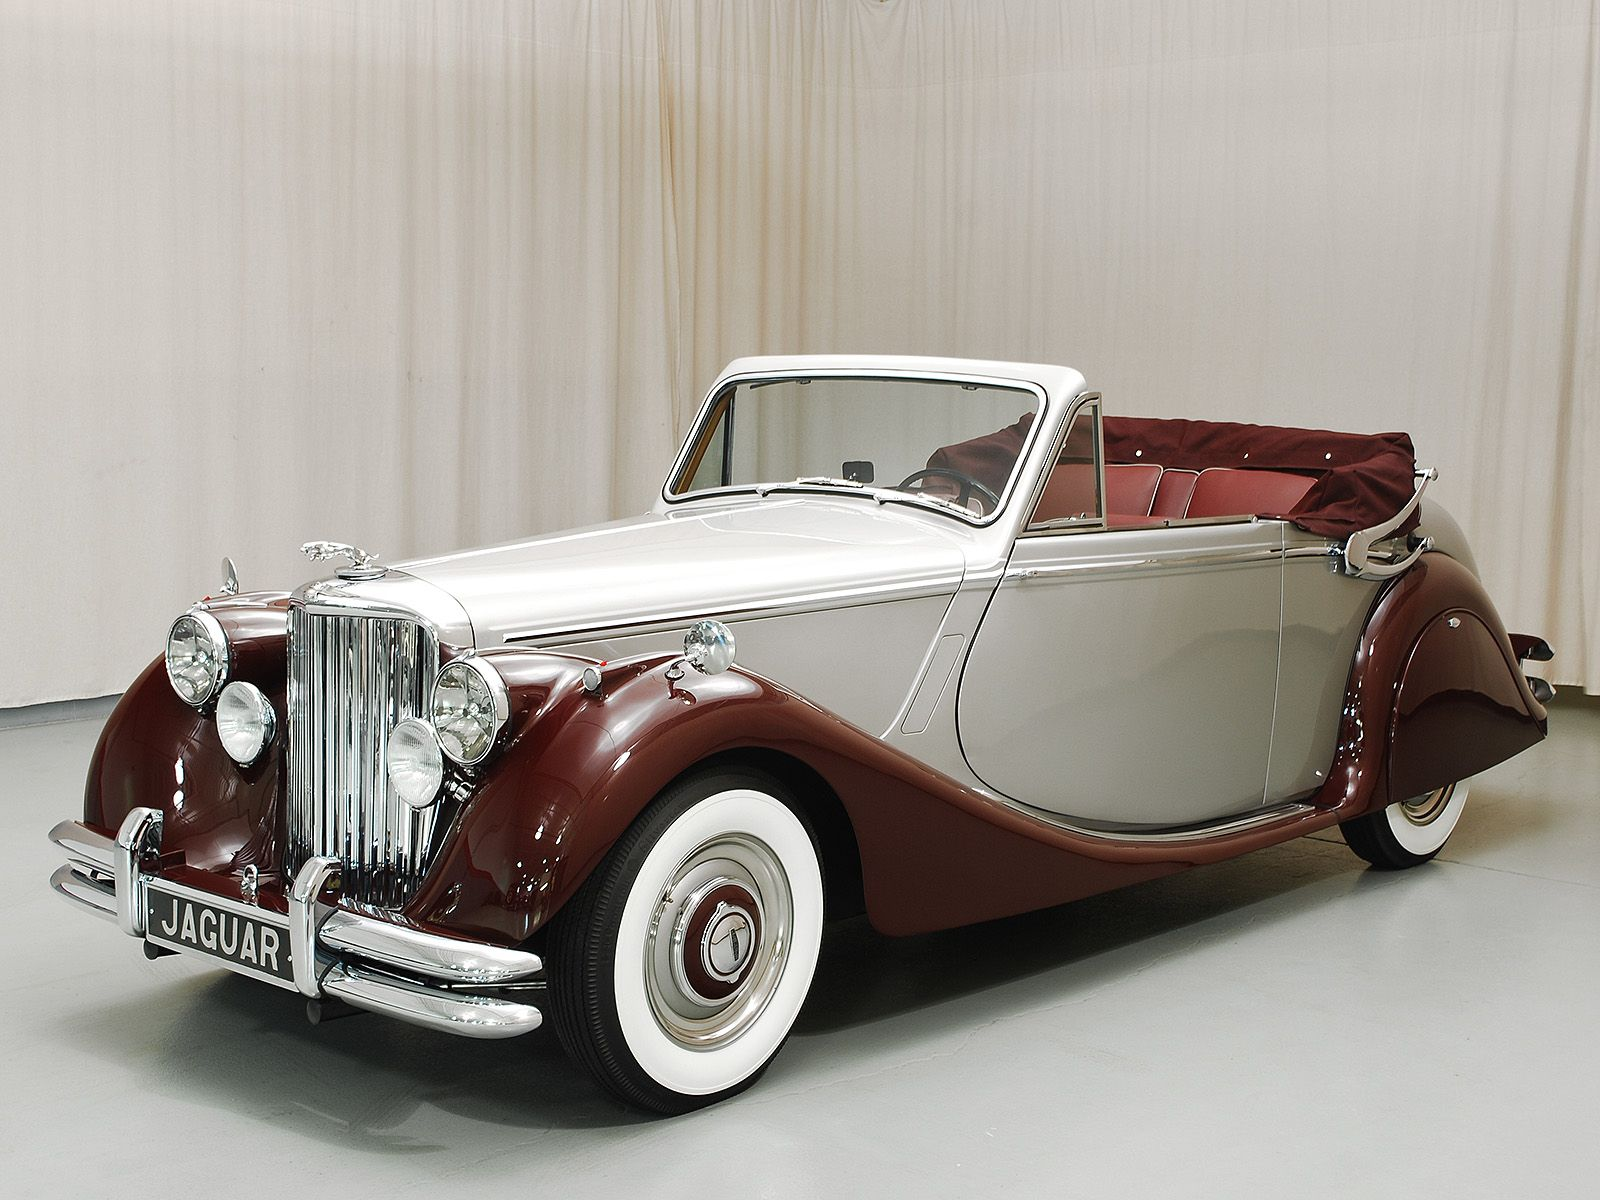 1950 Jaguar MKV. Offered for sale | Cars | Pinterest | Cars, Vehicle ...